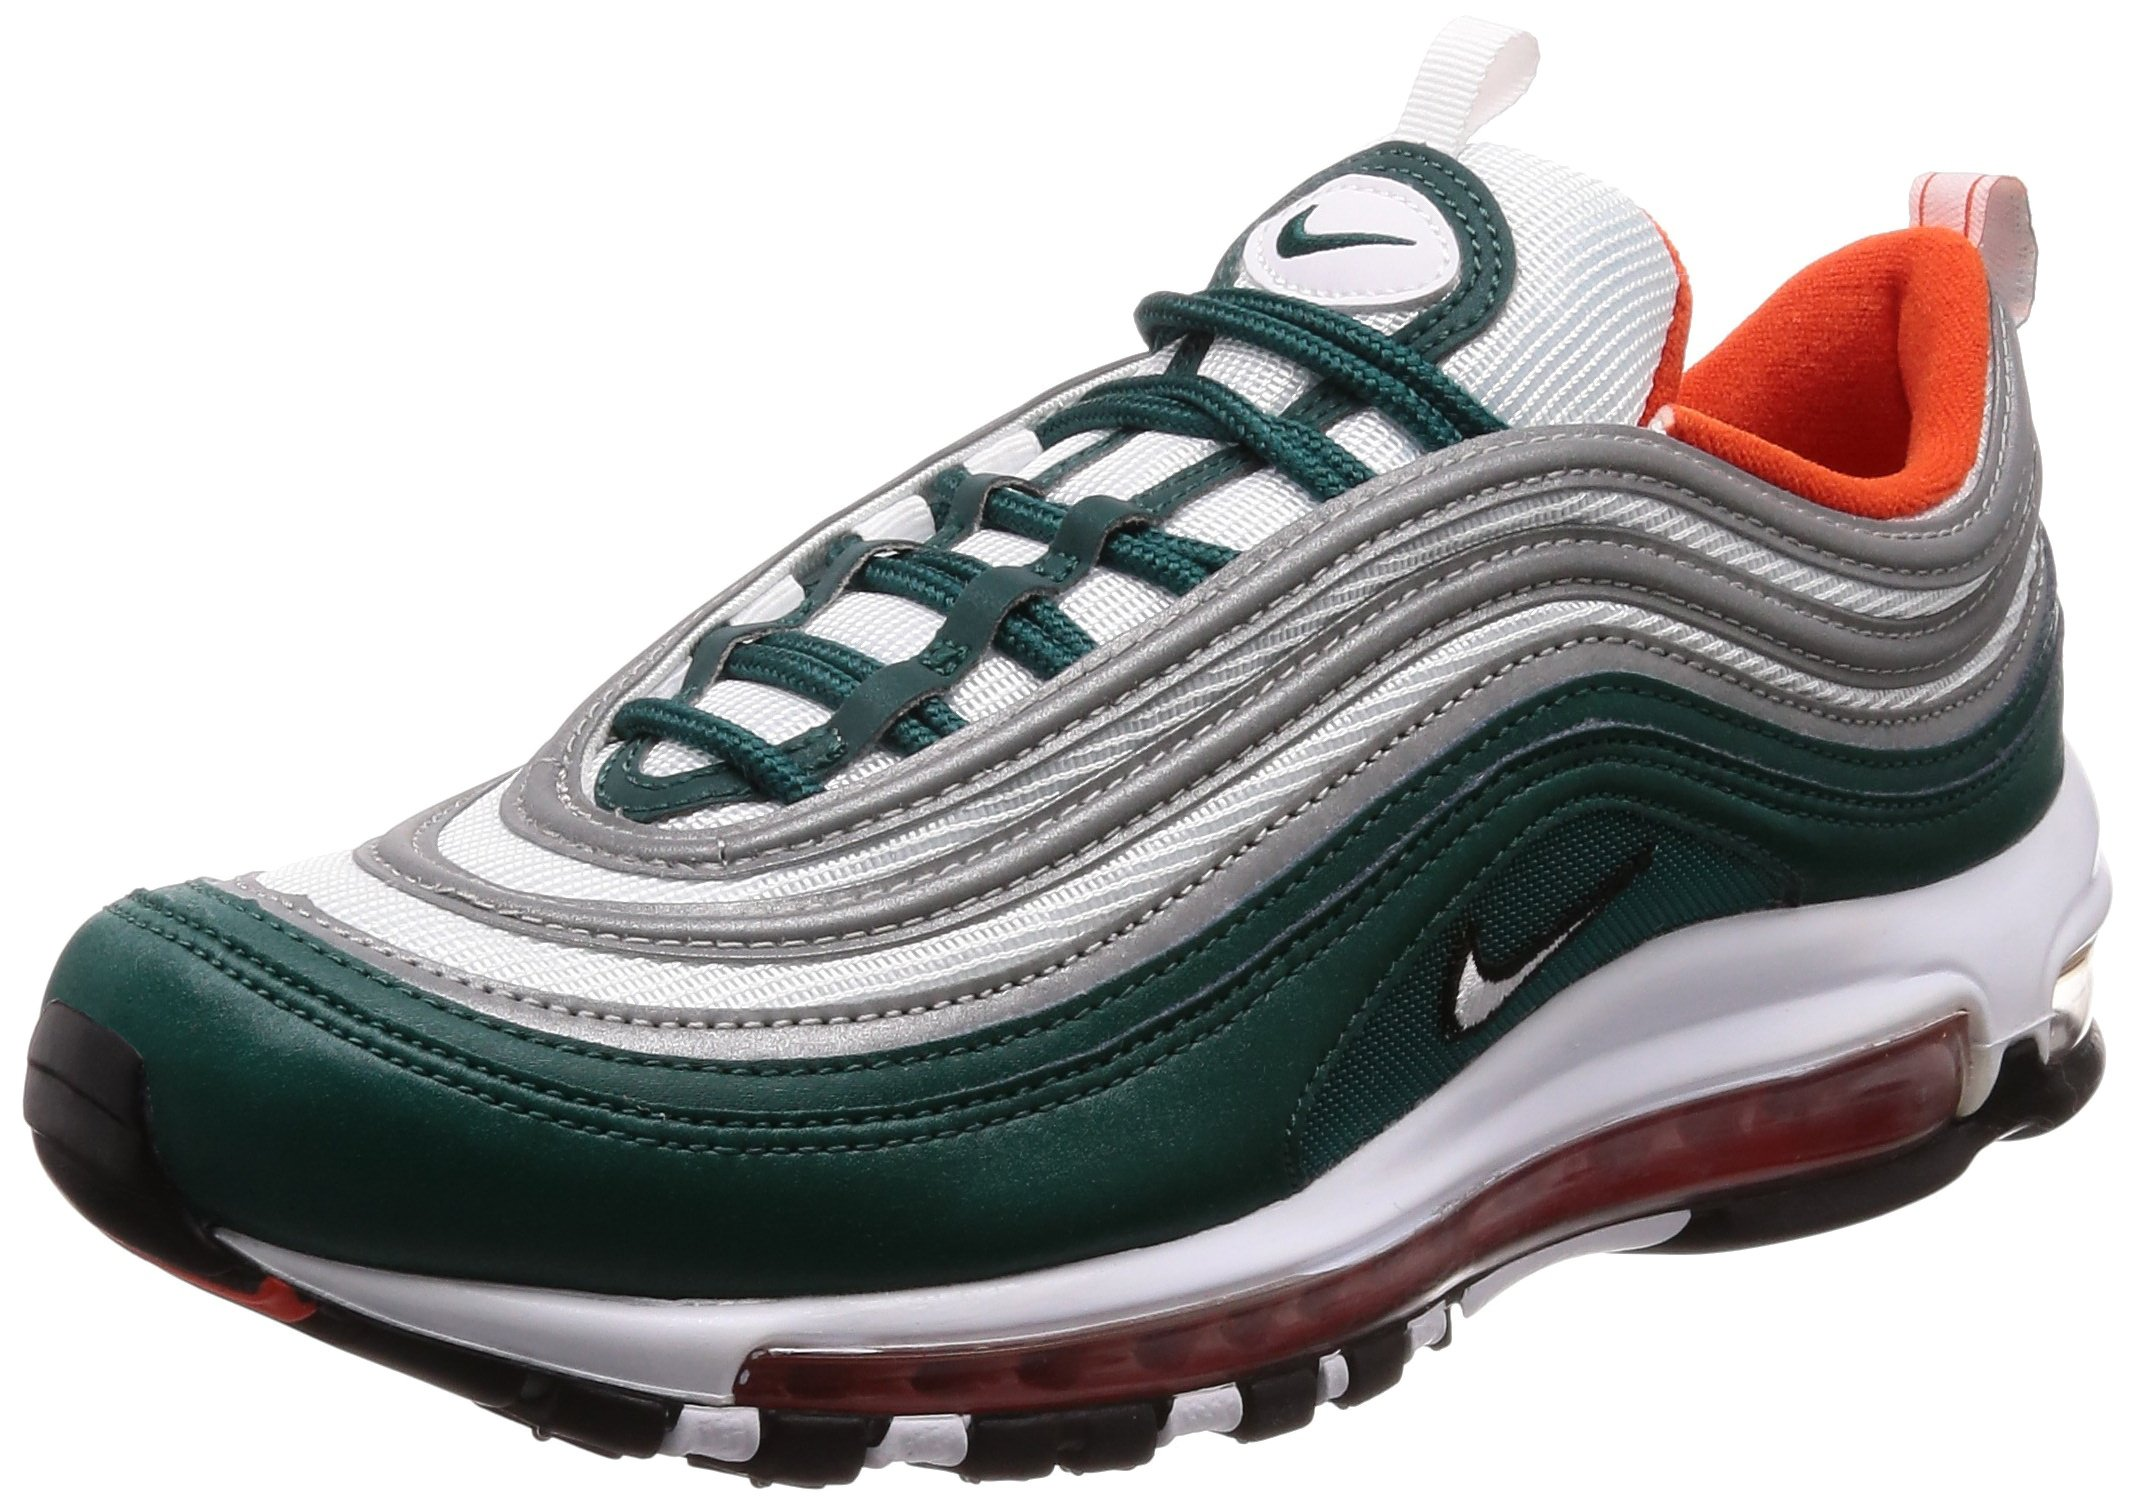 Galleon - NIKE Air Max 97 Hurricanes Mens Mens 921826-300 Size 13 2f4c94ad9cff